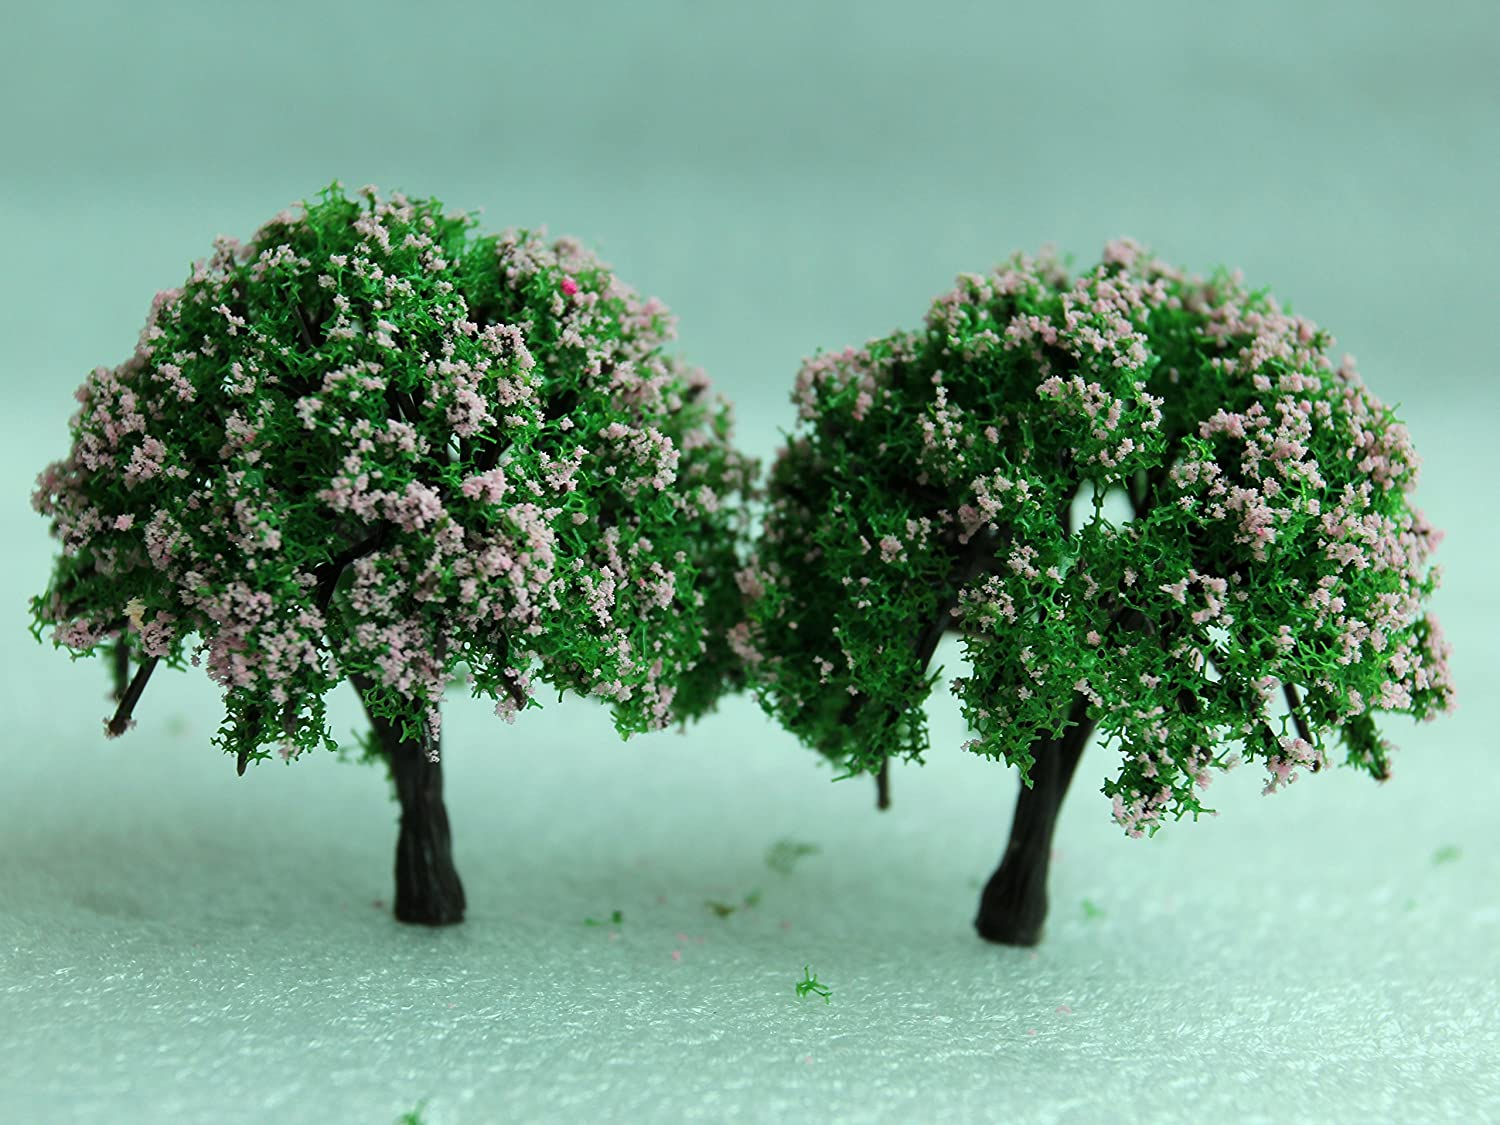 SecretRain Miniature Garden Fairy Ornament Flower Pot Plant Pot Home Decor 2pcs Tree Set by SecretRain